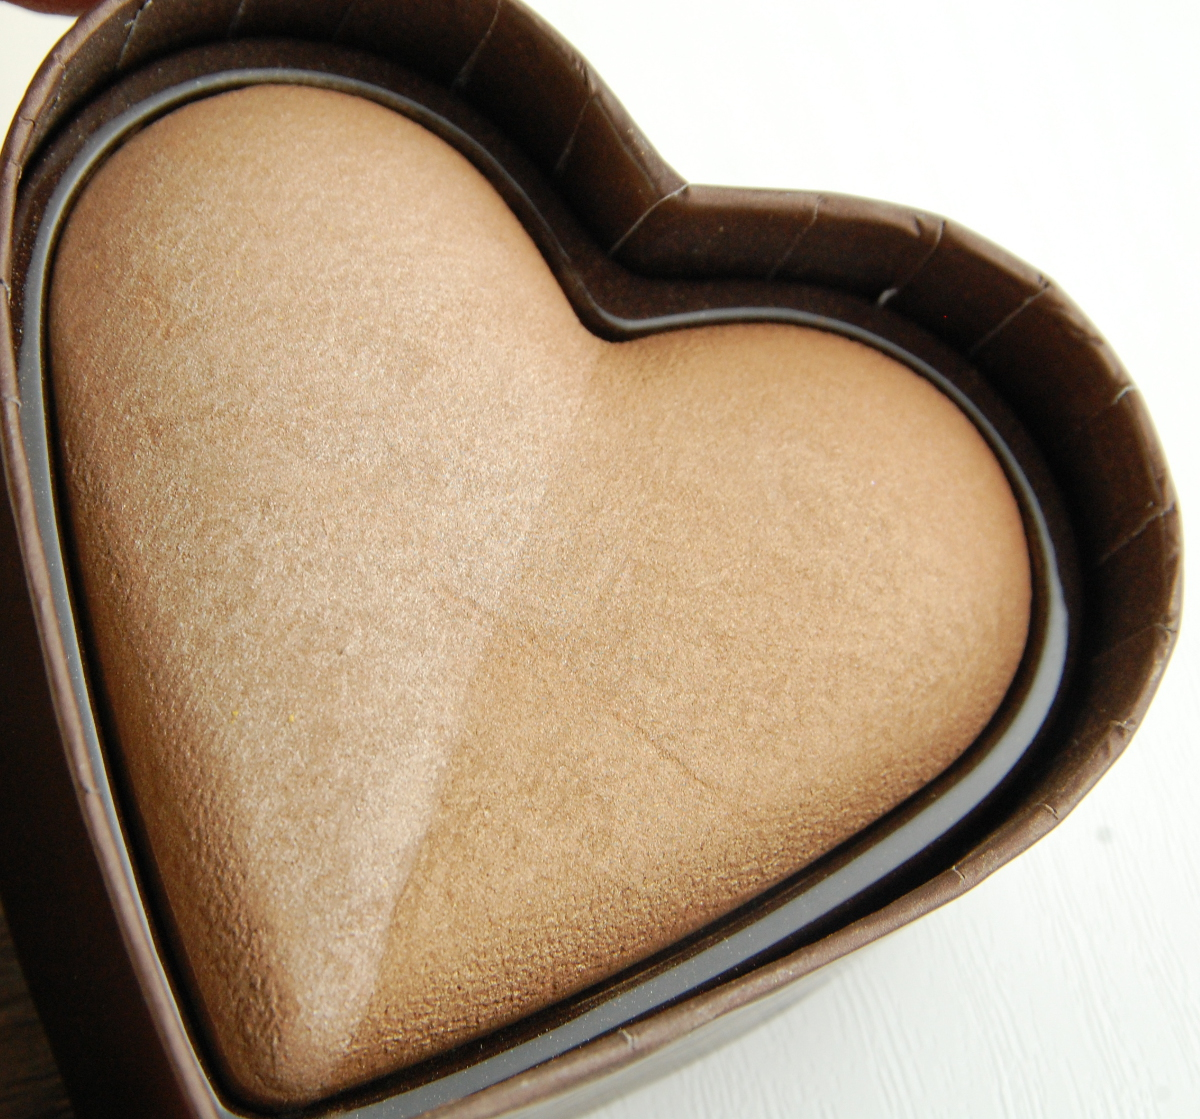 Too Faced Sweethearts Bronzer review 2